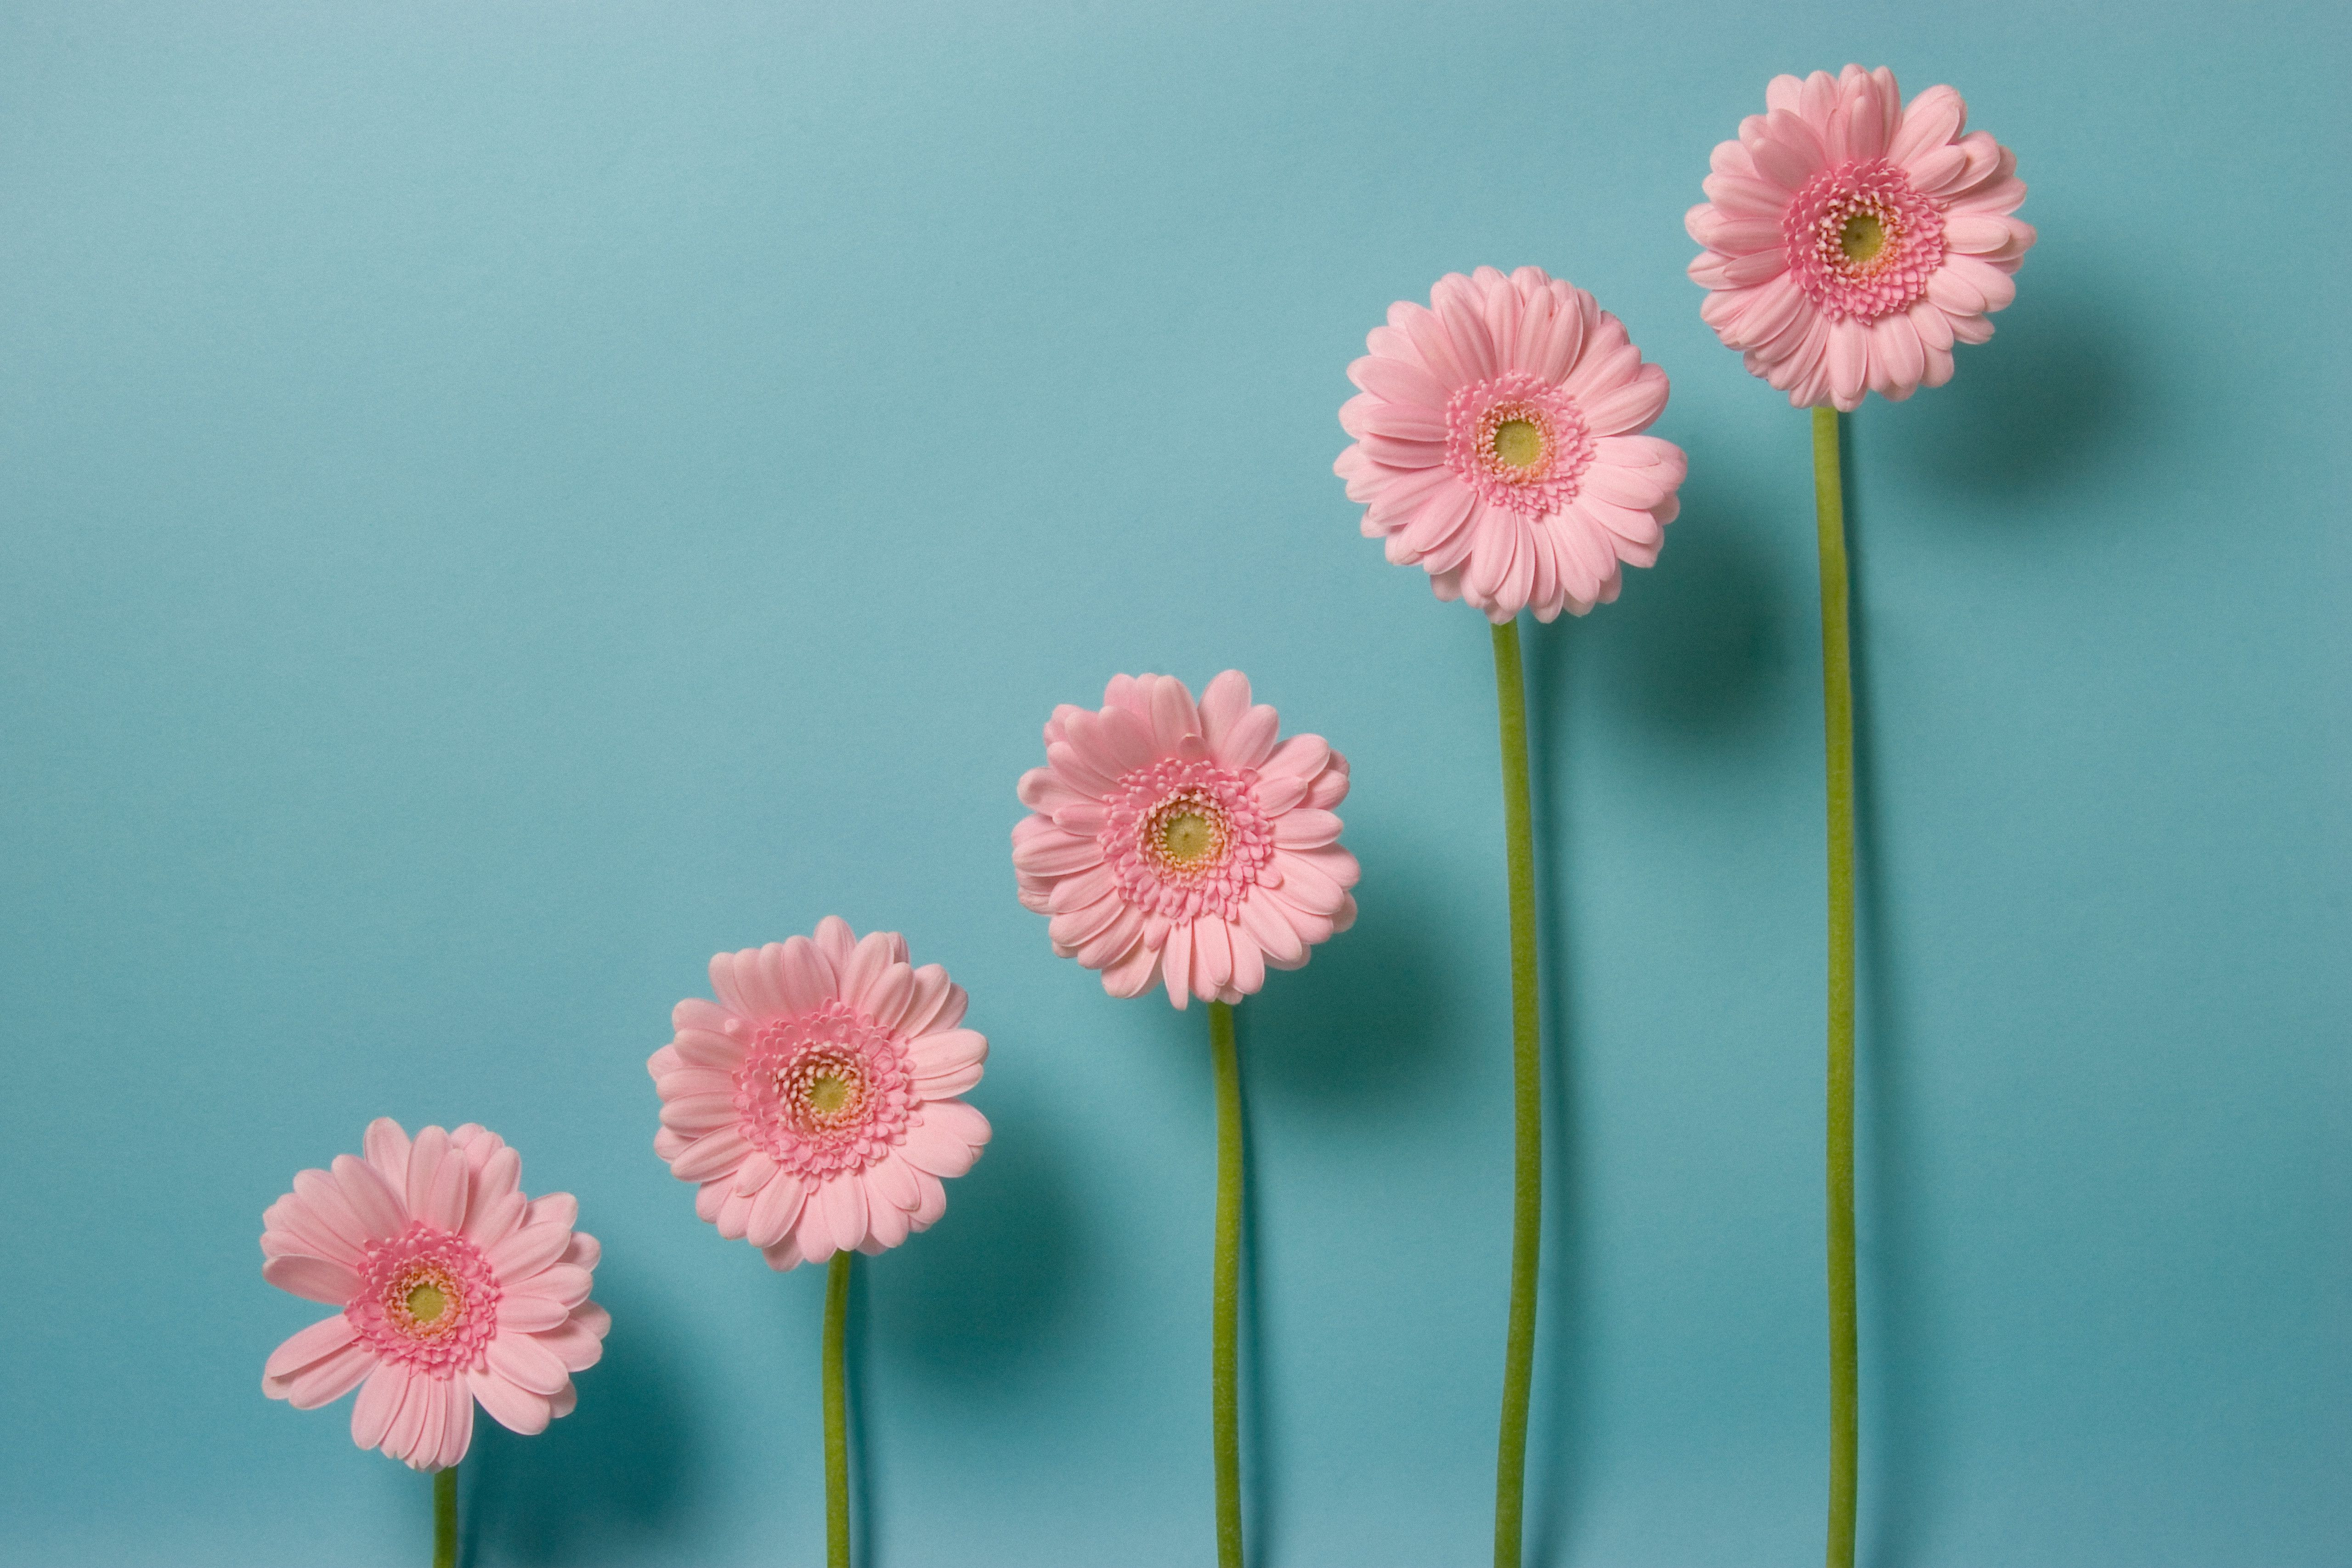 Flowers of different heights